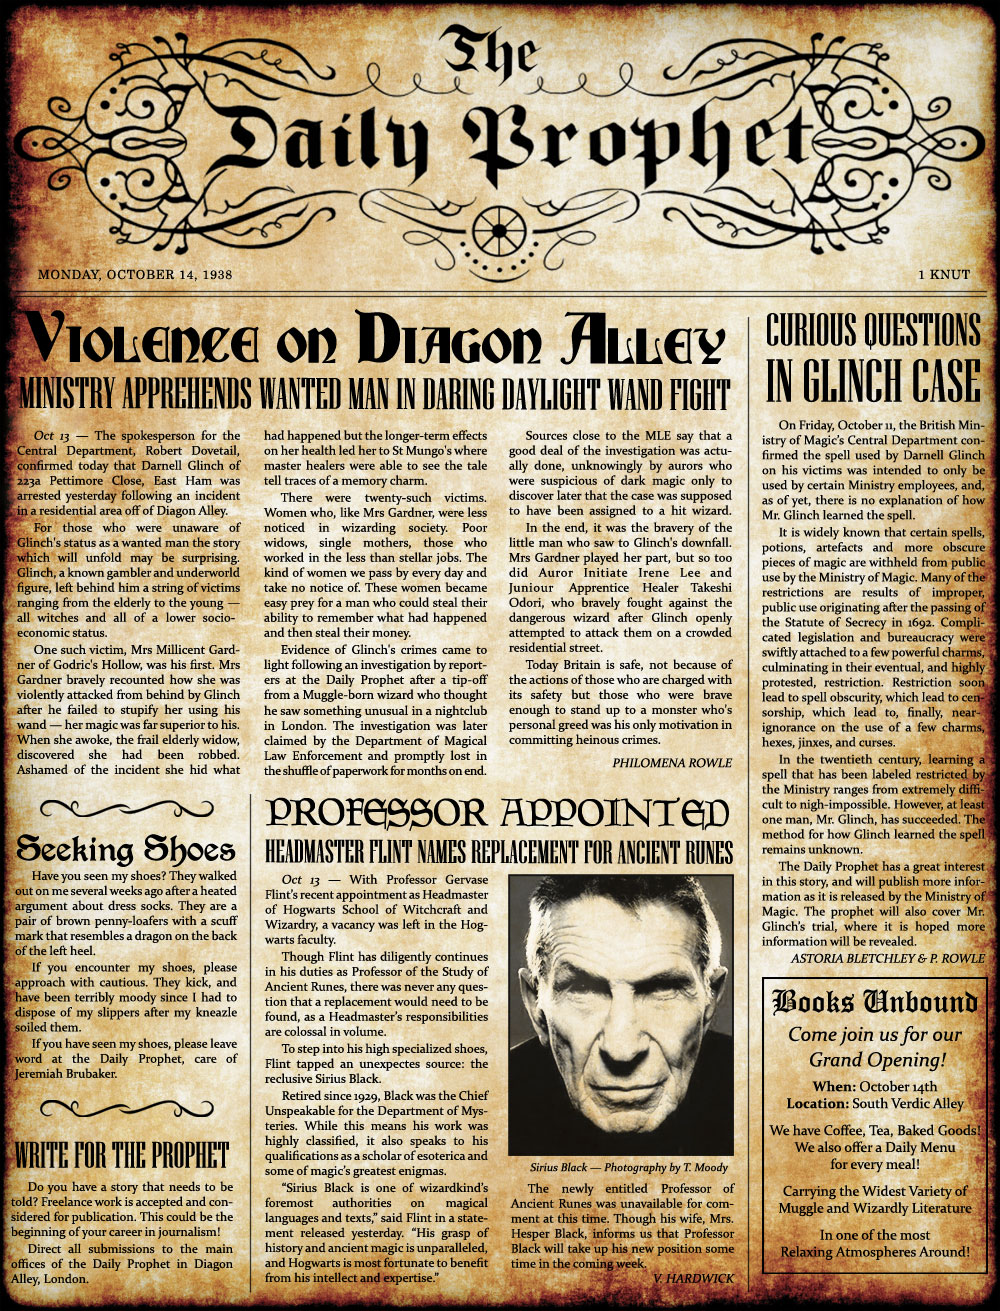 1938-10-14) The Daily Prophet - Violence on Diagon Alley ...